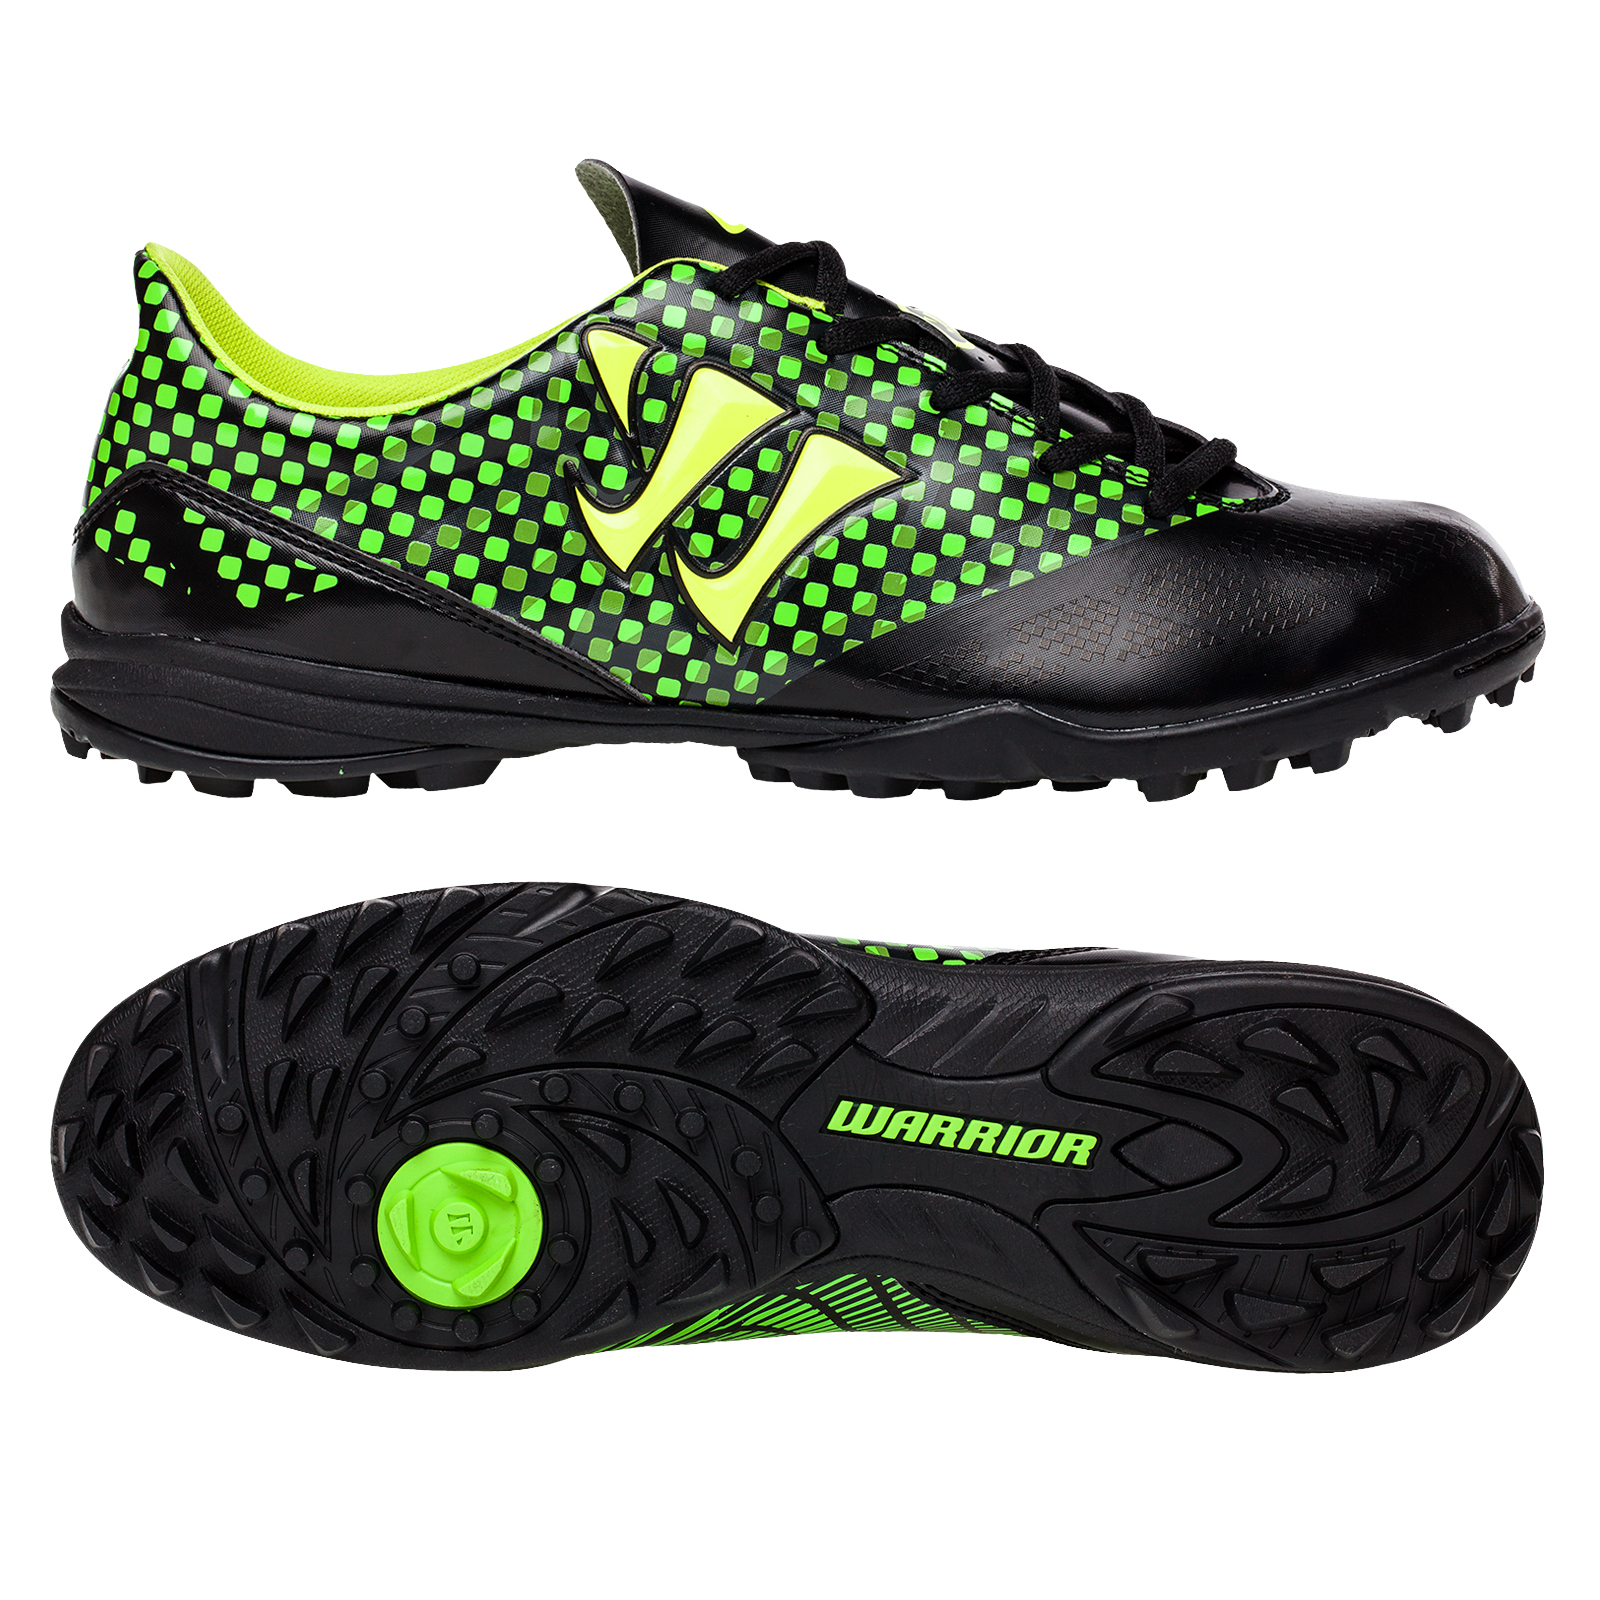 Warrior Sports Gambler Combat Astroturf Trainers -Blk/Grn Black